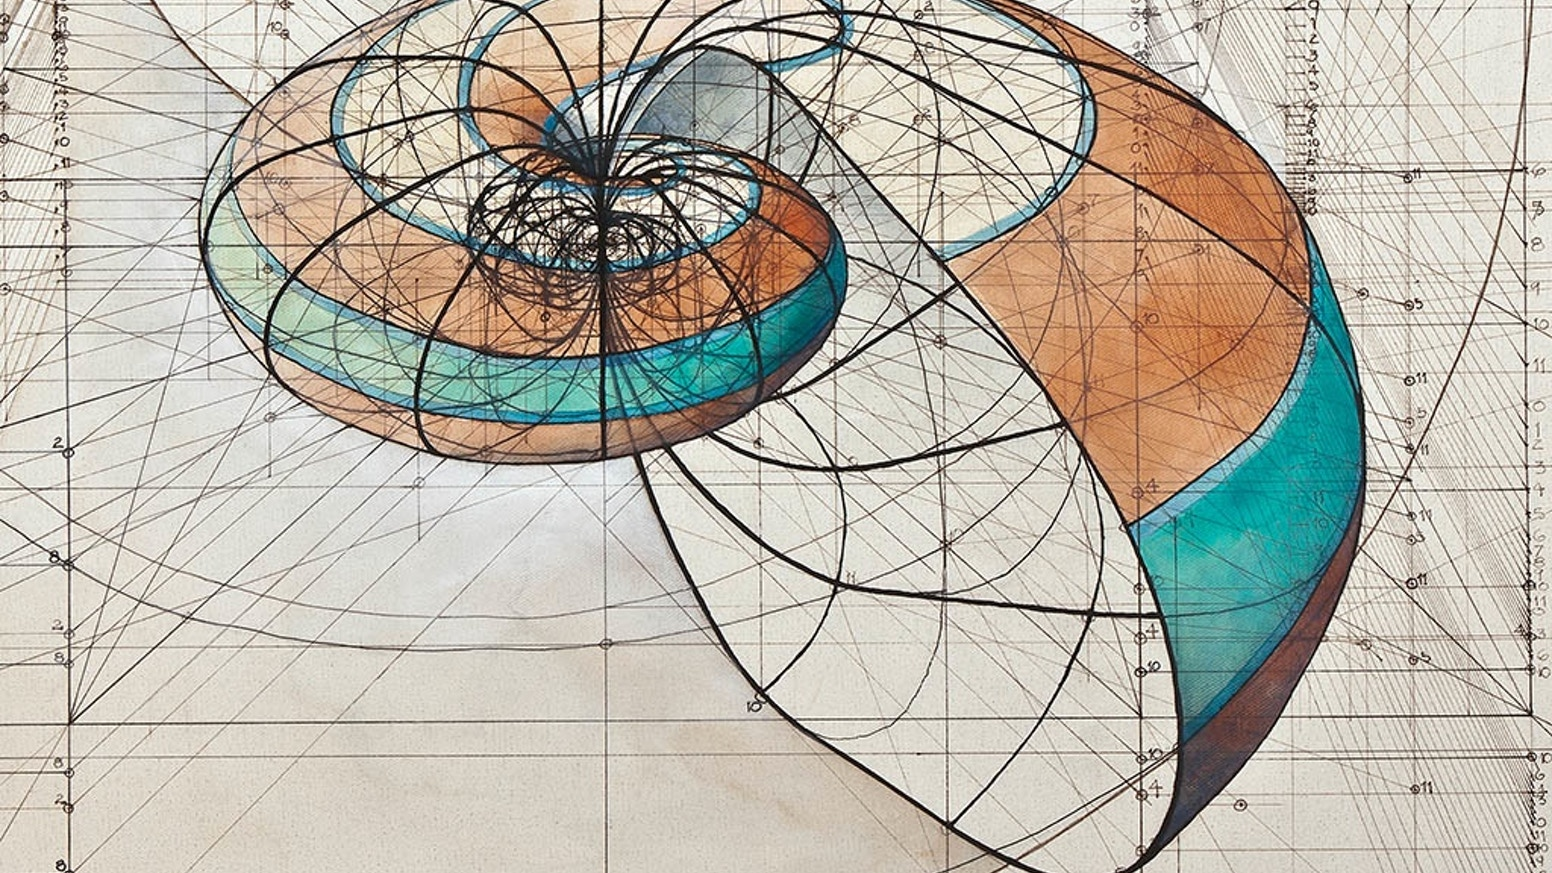 Golden ratio coloring book by rafael araujo kickstarter a coloring book with a collection of rafael araujos hand drawn golden ratio illustrations to reconnect solutioingenieria